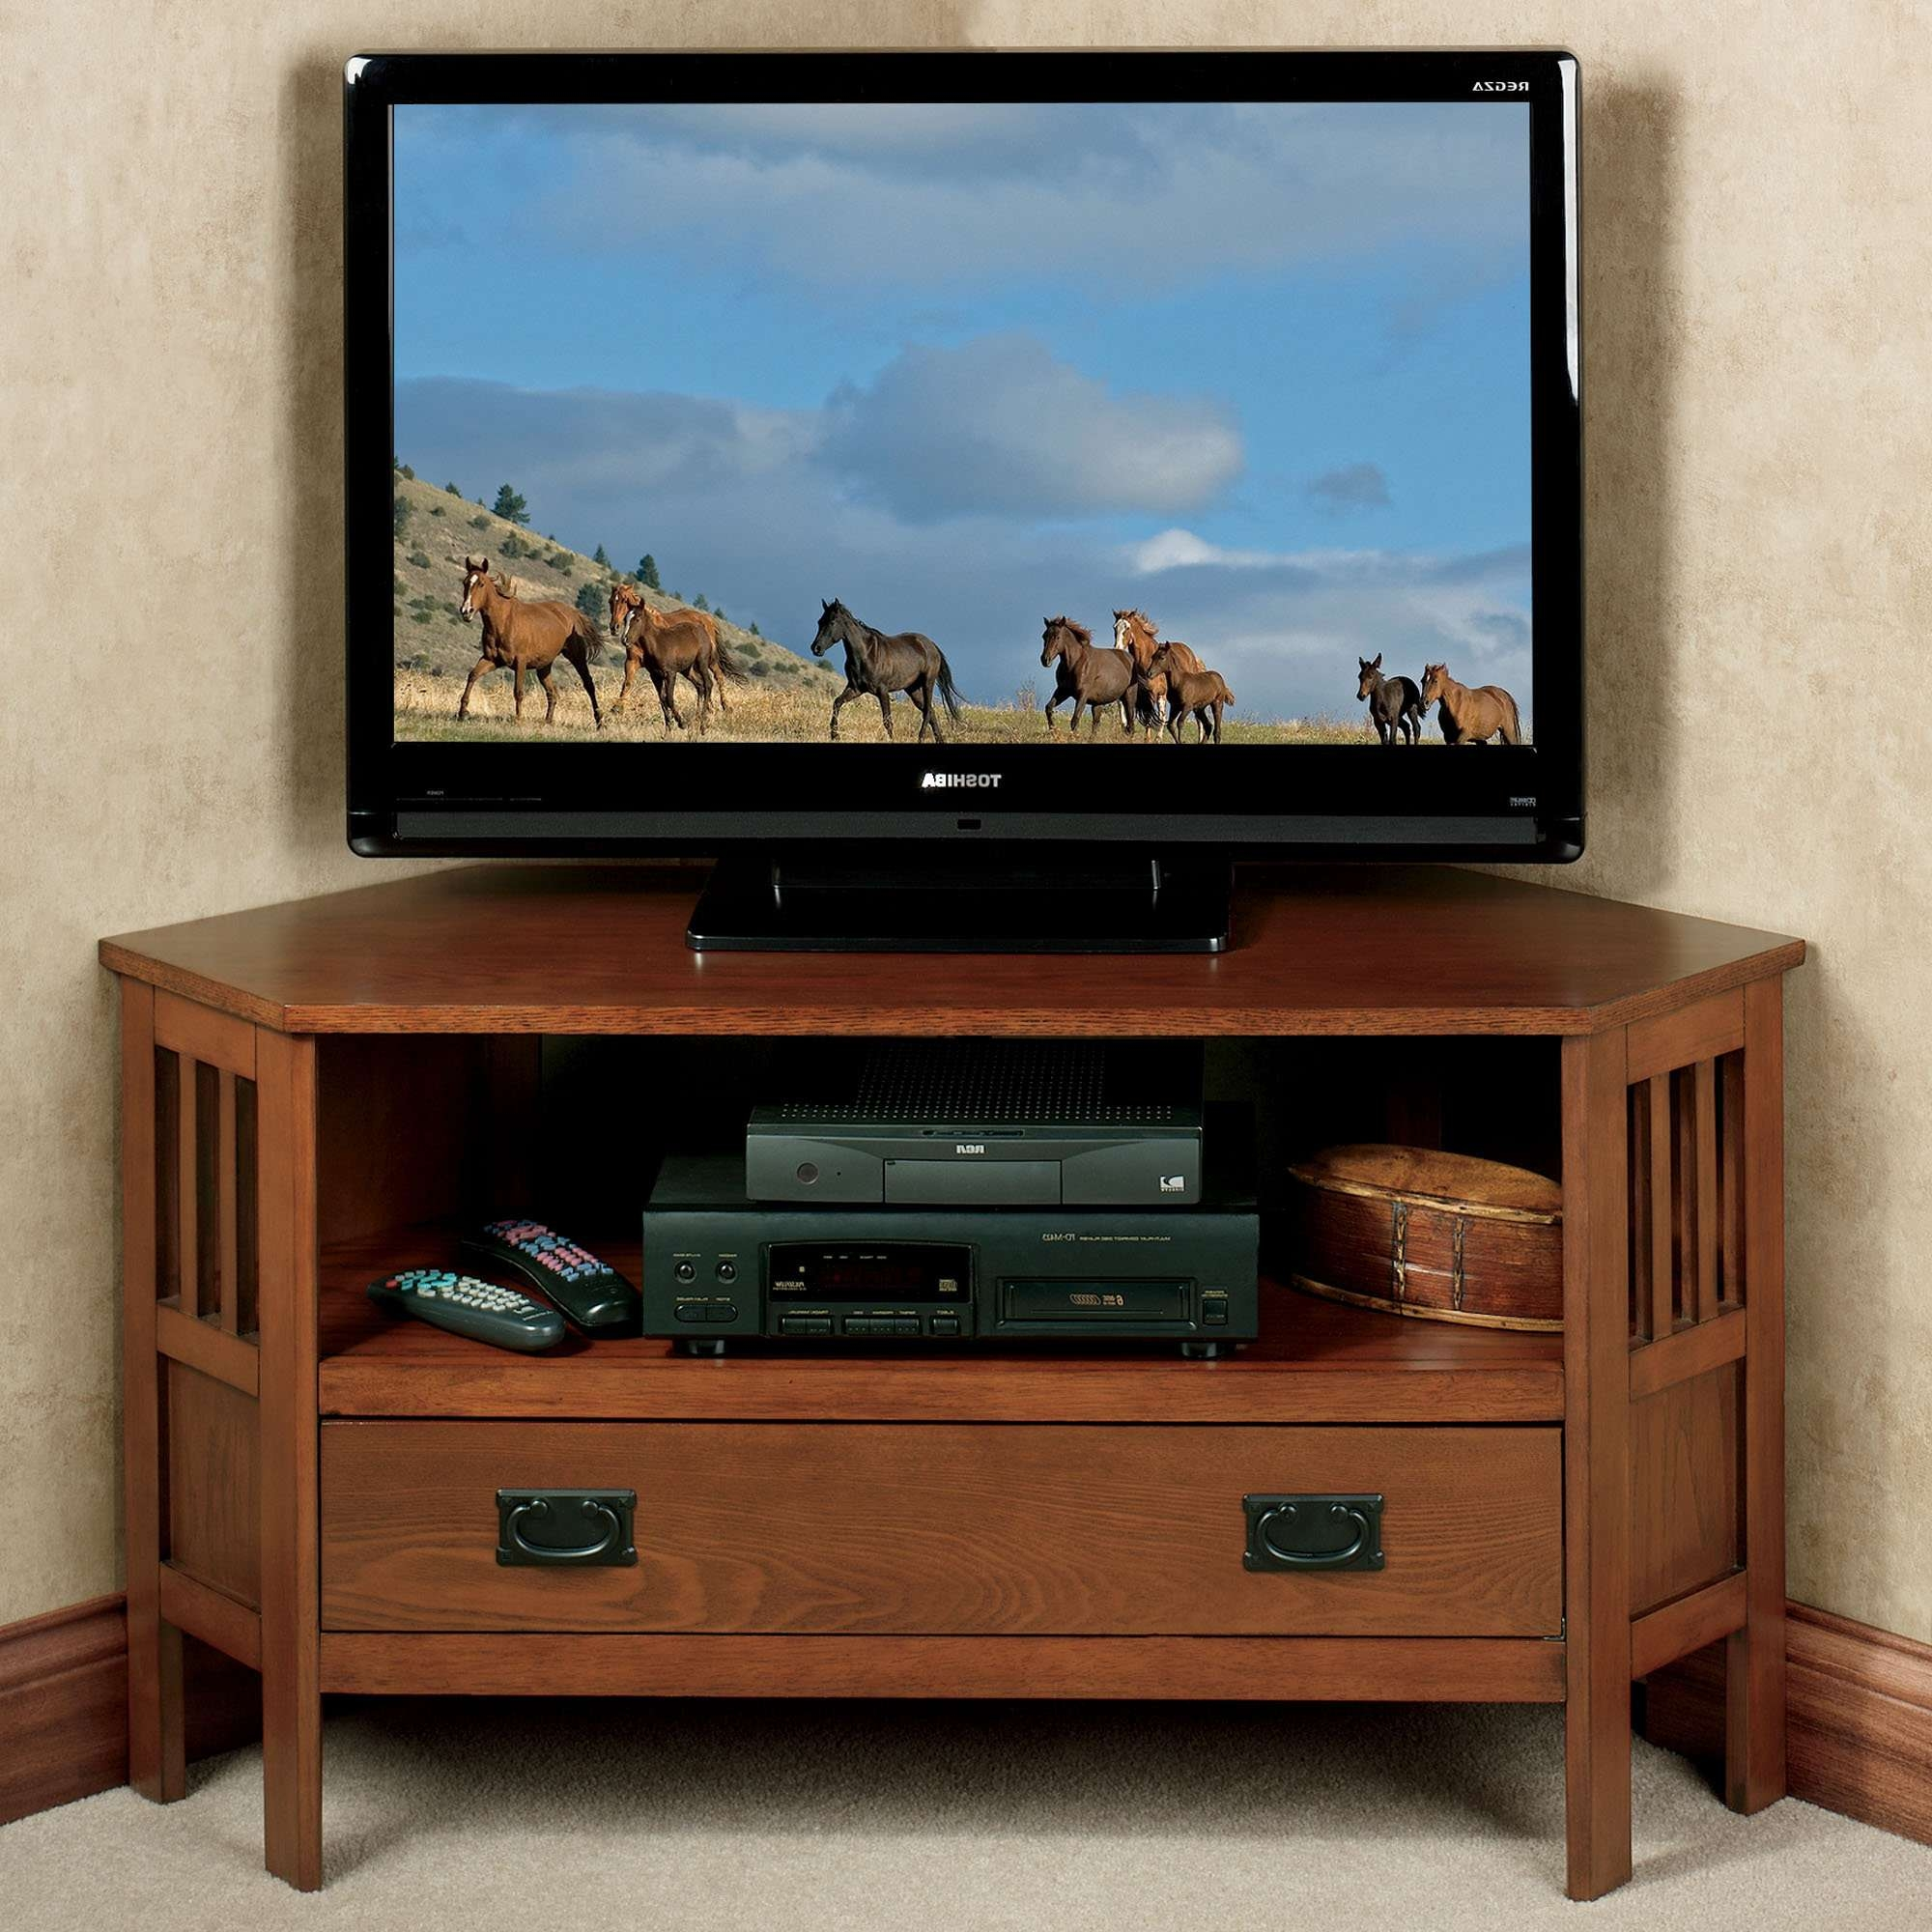 Fresh Corner Tv Stand For 55 Inch Flat Screen 78 With Additional Throughout 55 Inch Corner Tv Stands (View 9 of 20)